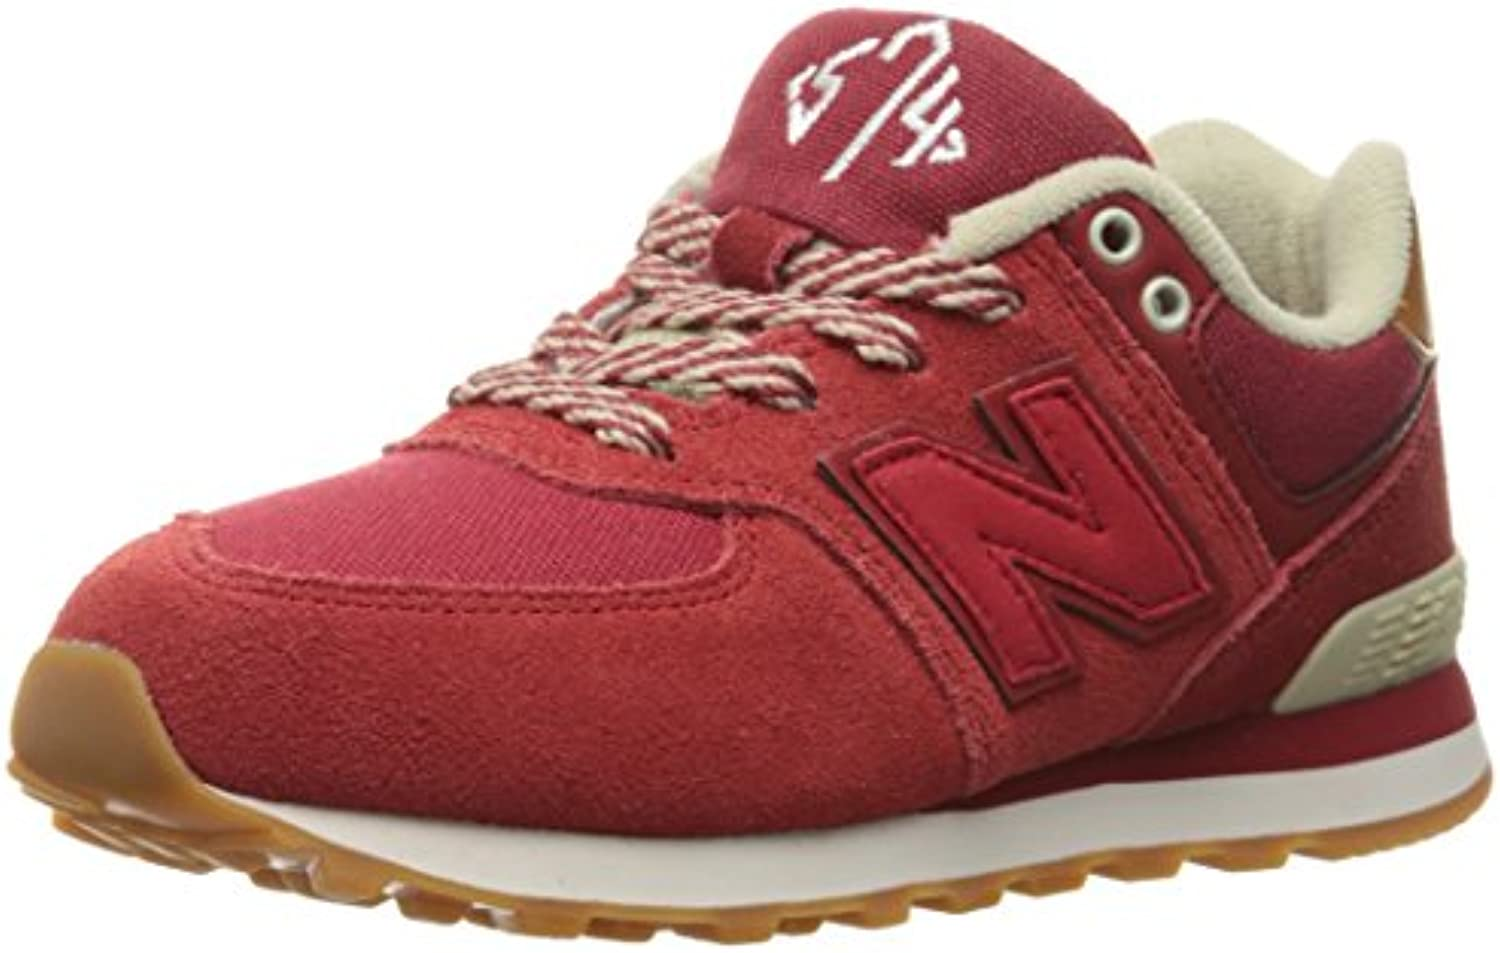 New Balance Youths 574 Collegiate Suede Trainers